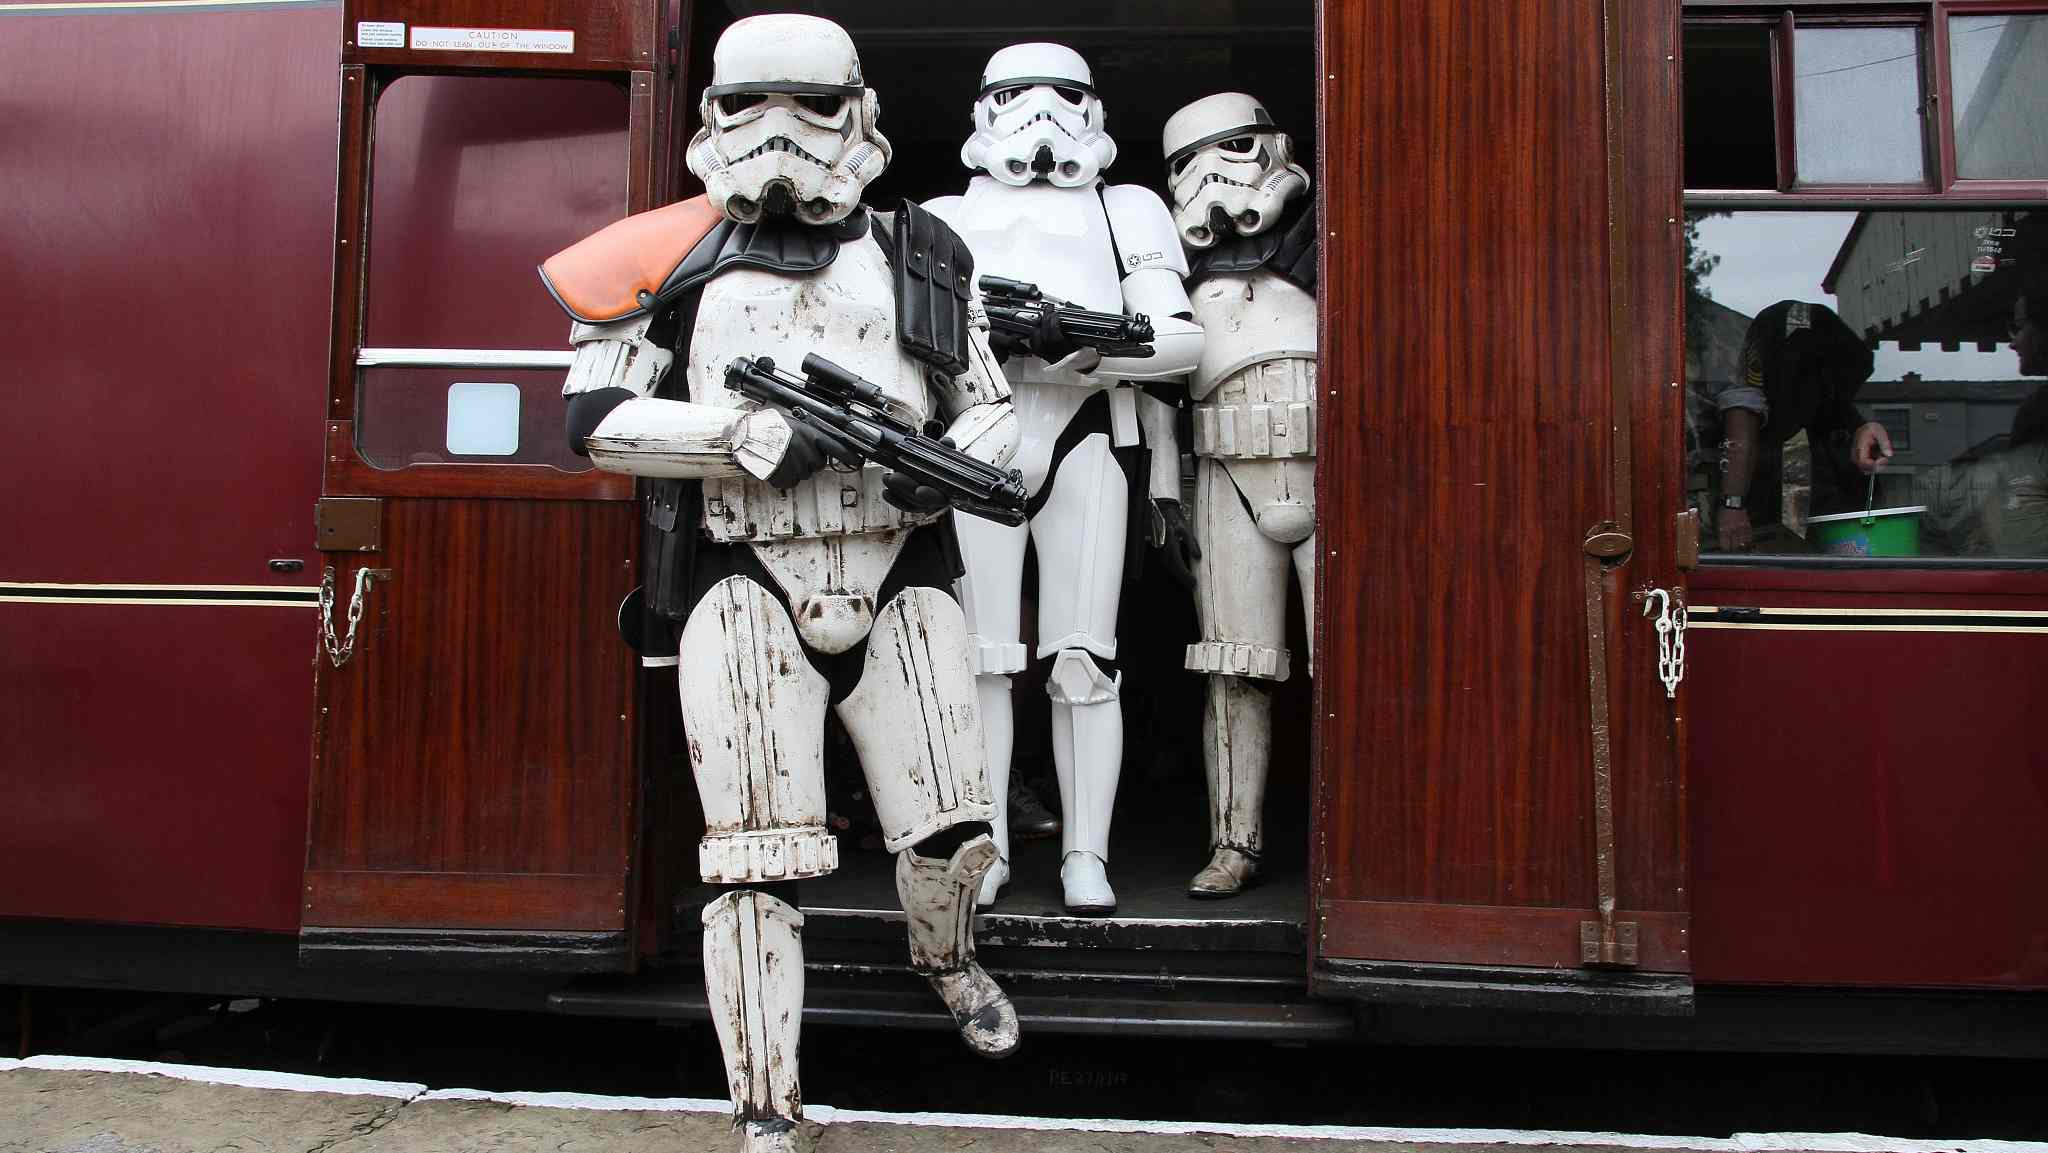 UK railway station brings sci-fi movie characters to life